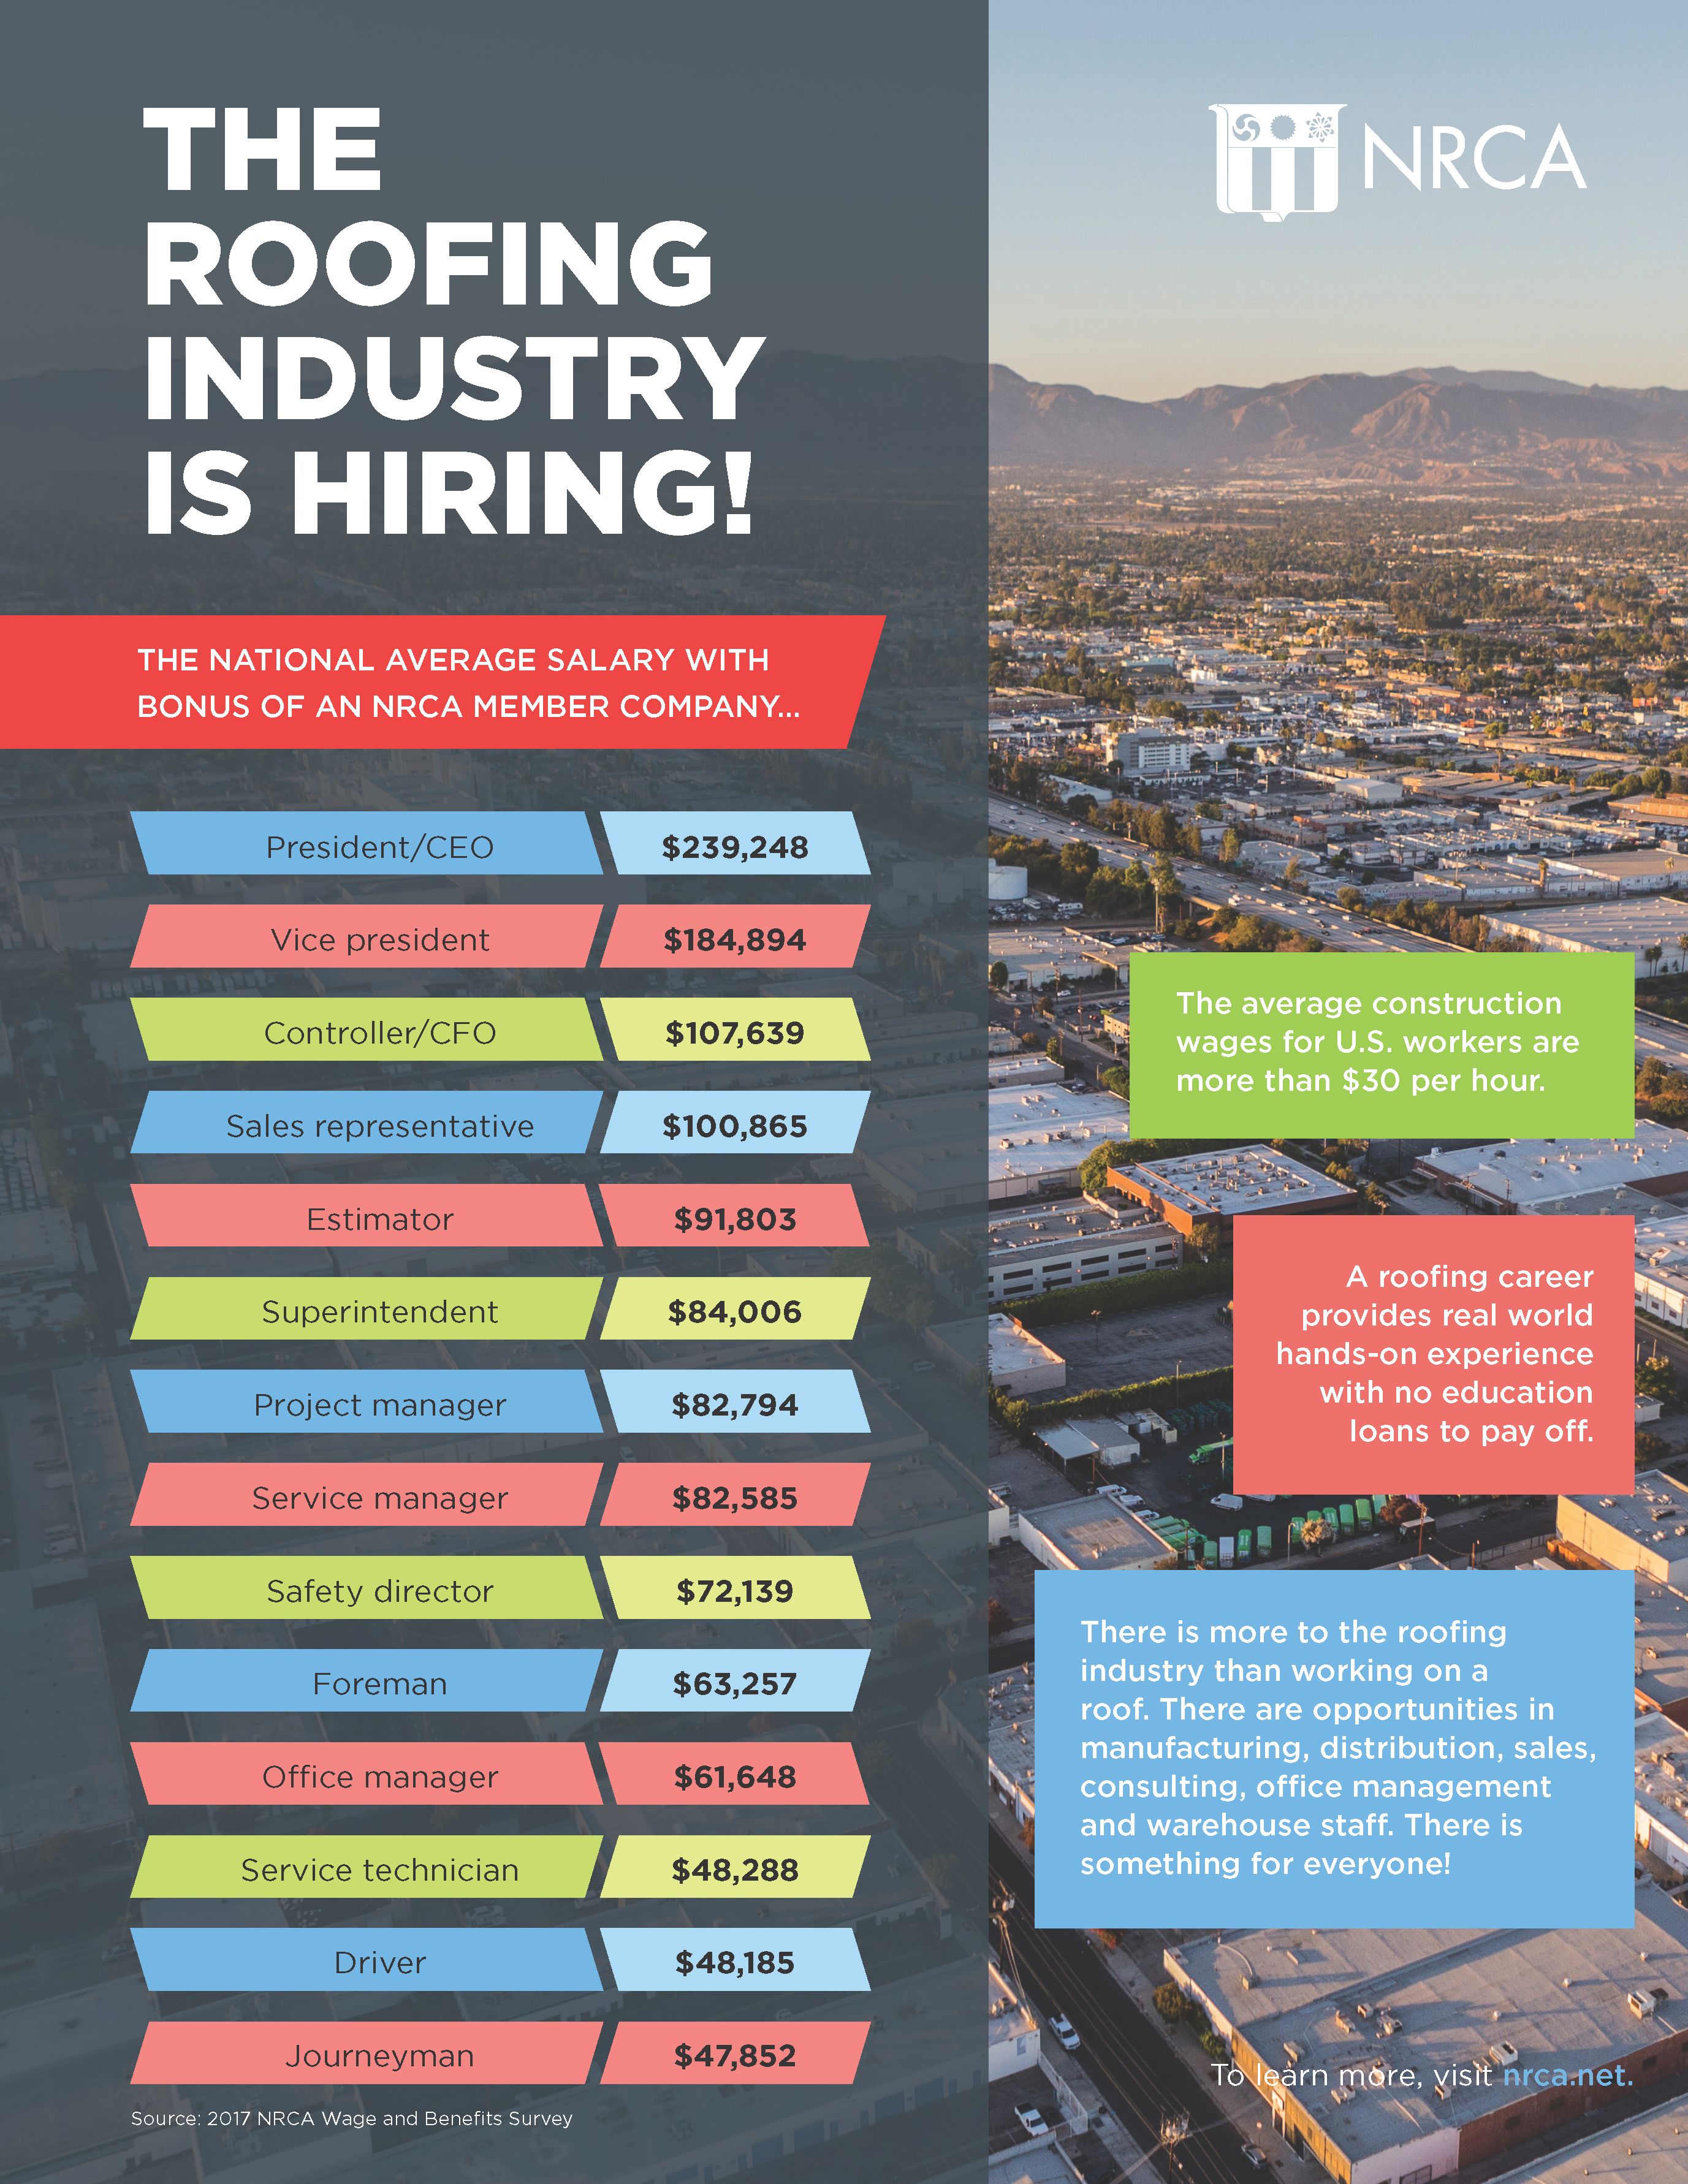 The Roofing Industry Is Hiring!